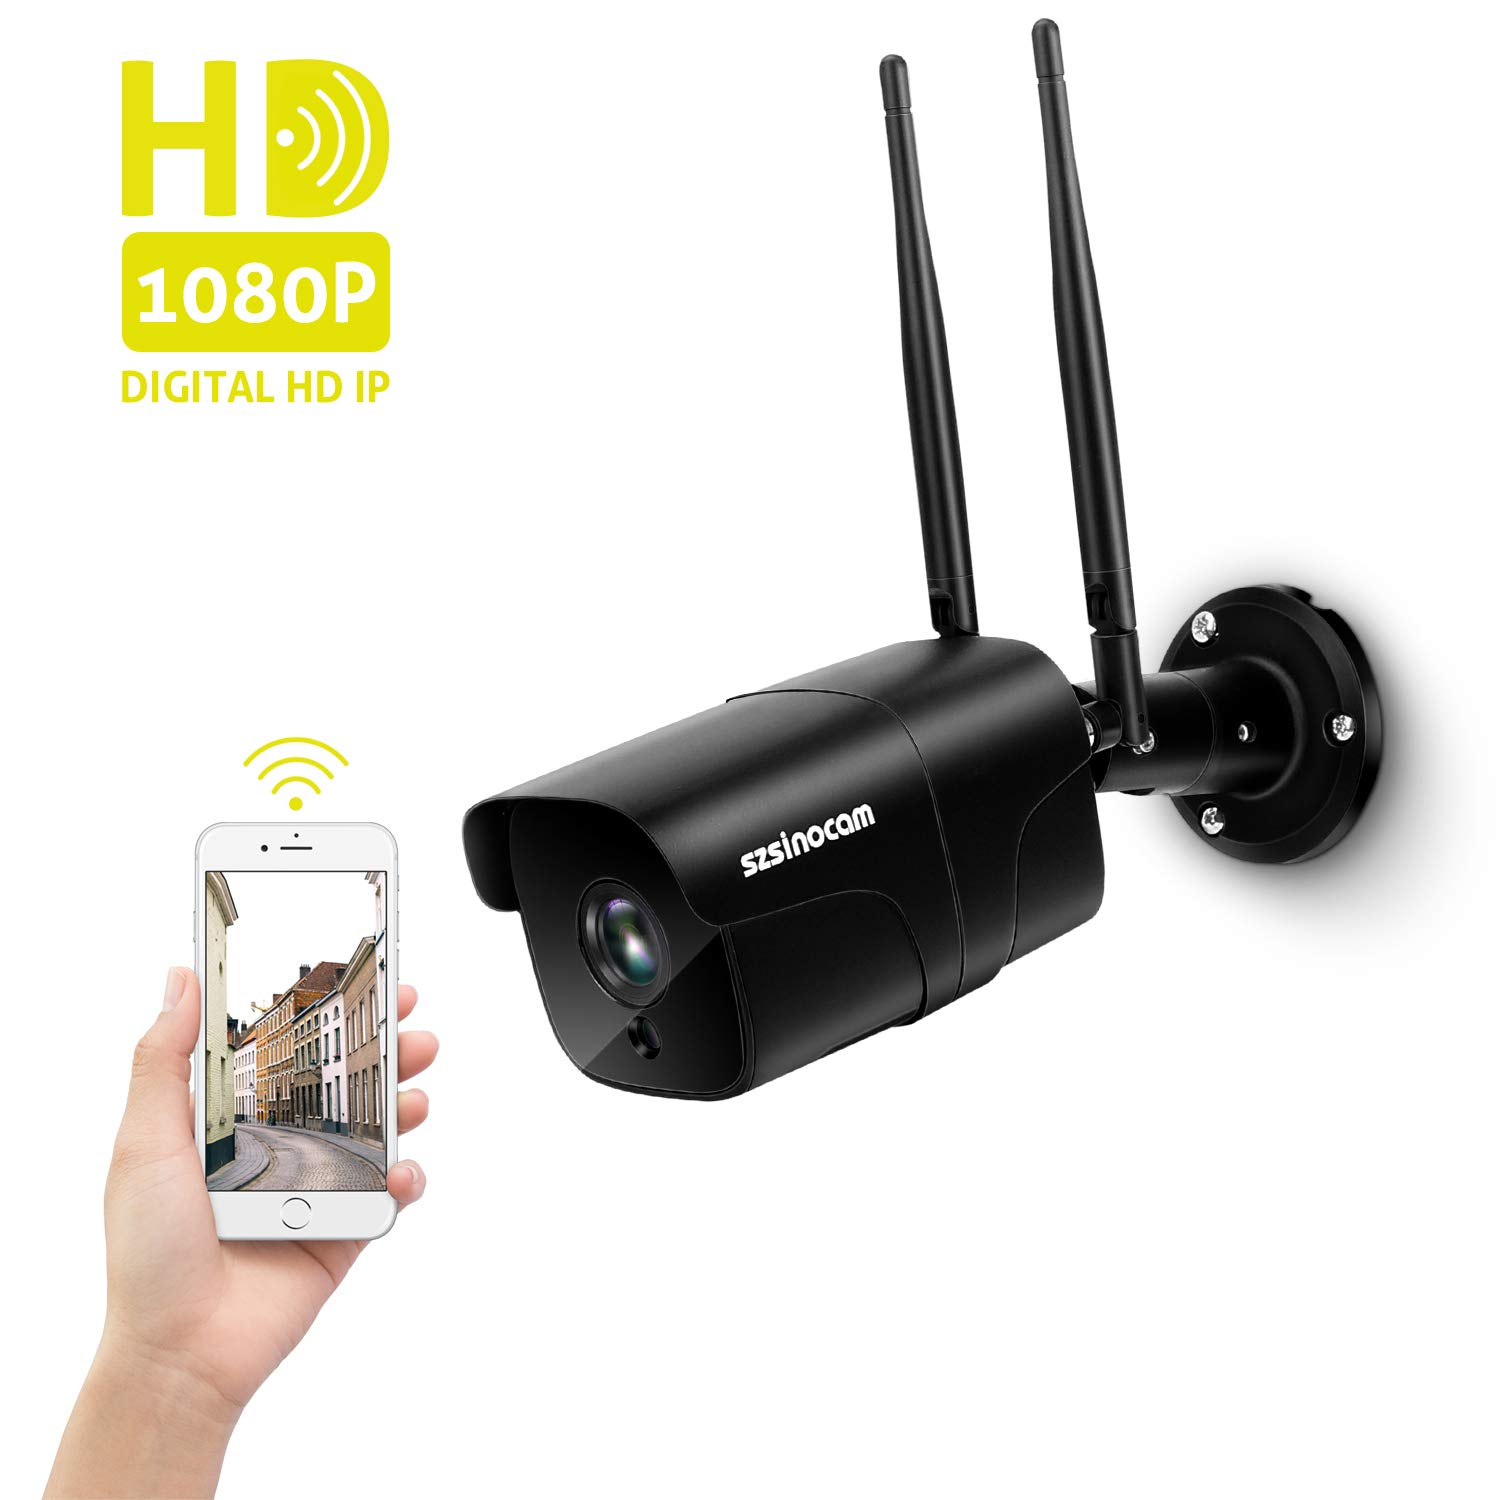 HeimVision HM211 Outdoor Security Camera Wireless Motion Detection Floodlight Siren Alarm Two-Way Audio Waterproof 1080P WiFi Surveillance Camera with Night Vision Cloud Service//Microsd Support